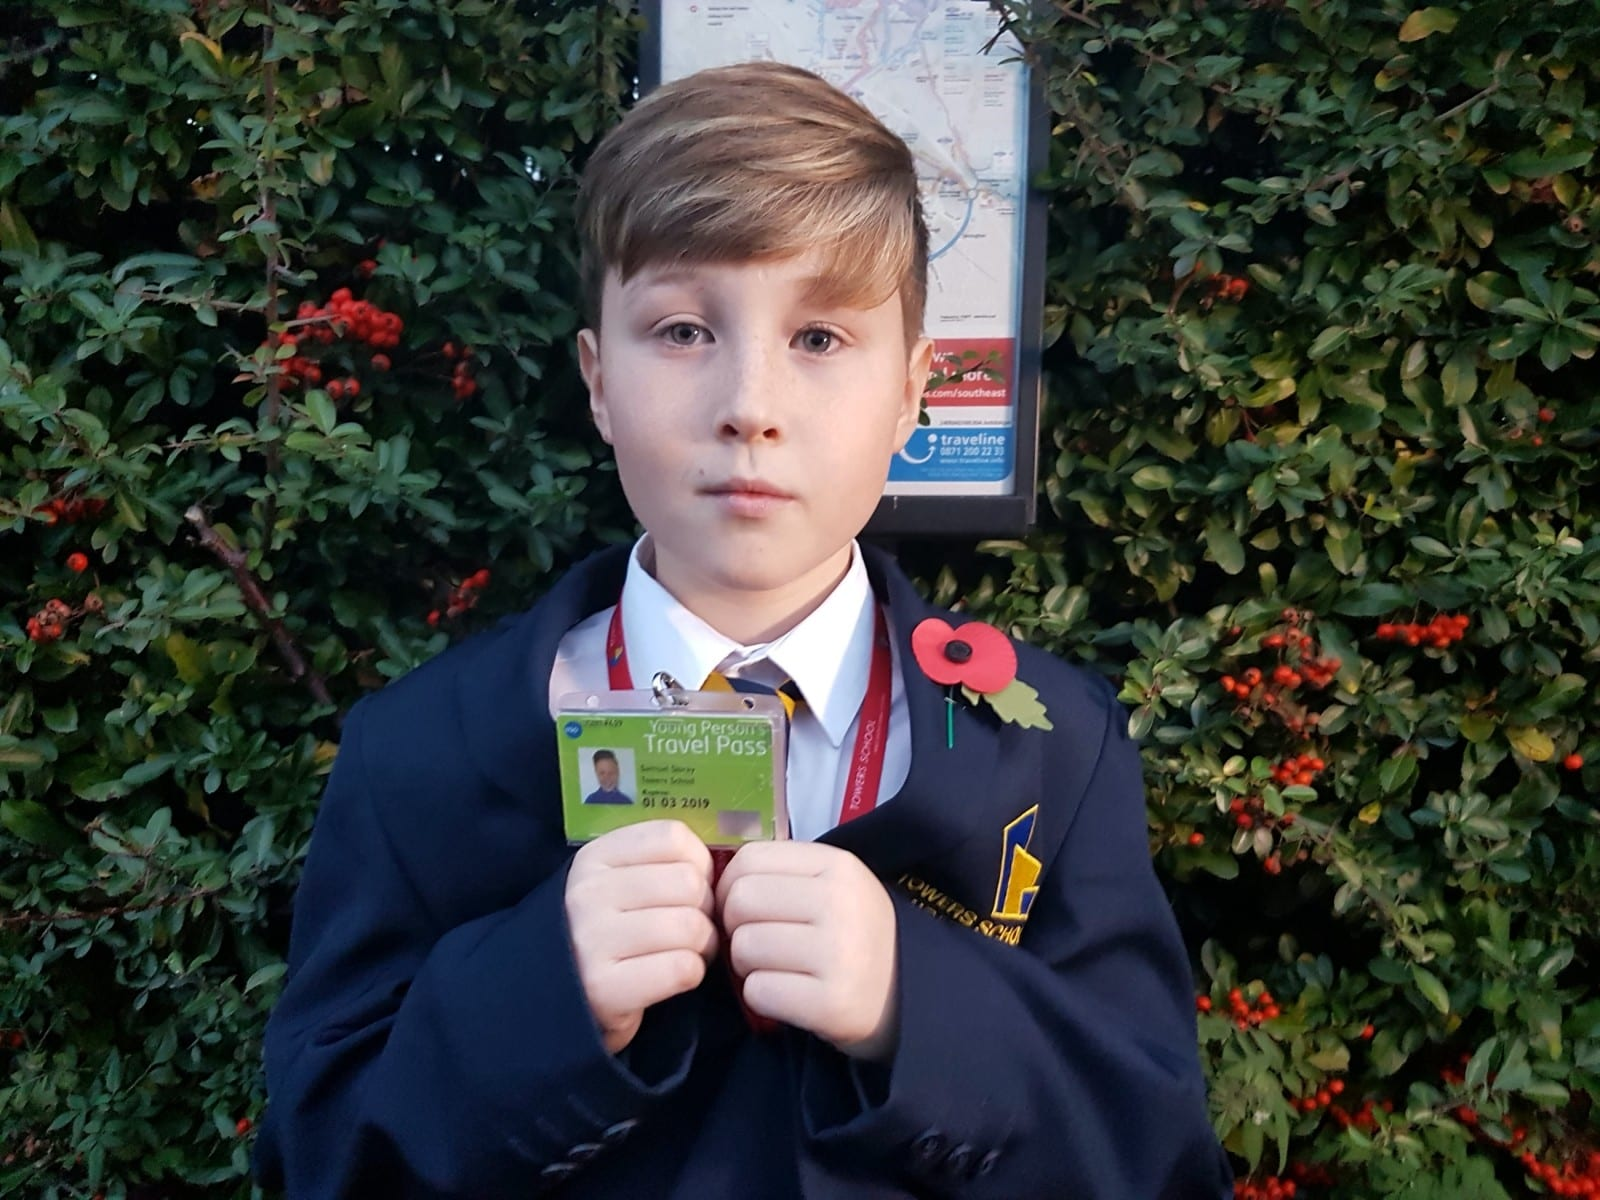 11-Year-Old Booted Off Bus In The Pouring Rain – Because His Fingers Were Too Cold To Take Bus Pass Out Of Clear Holder